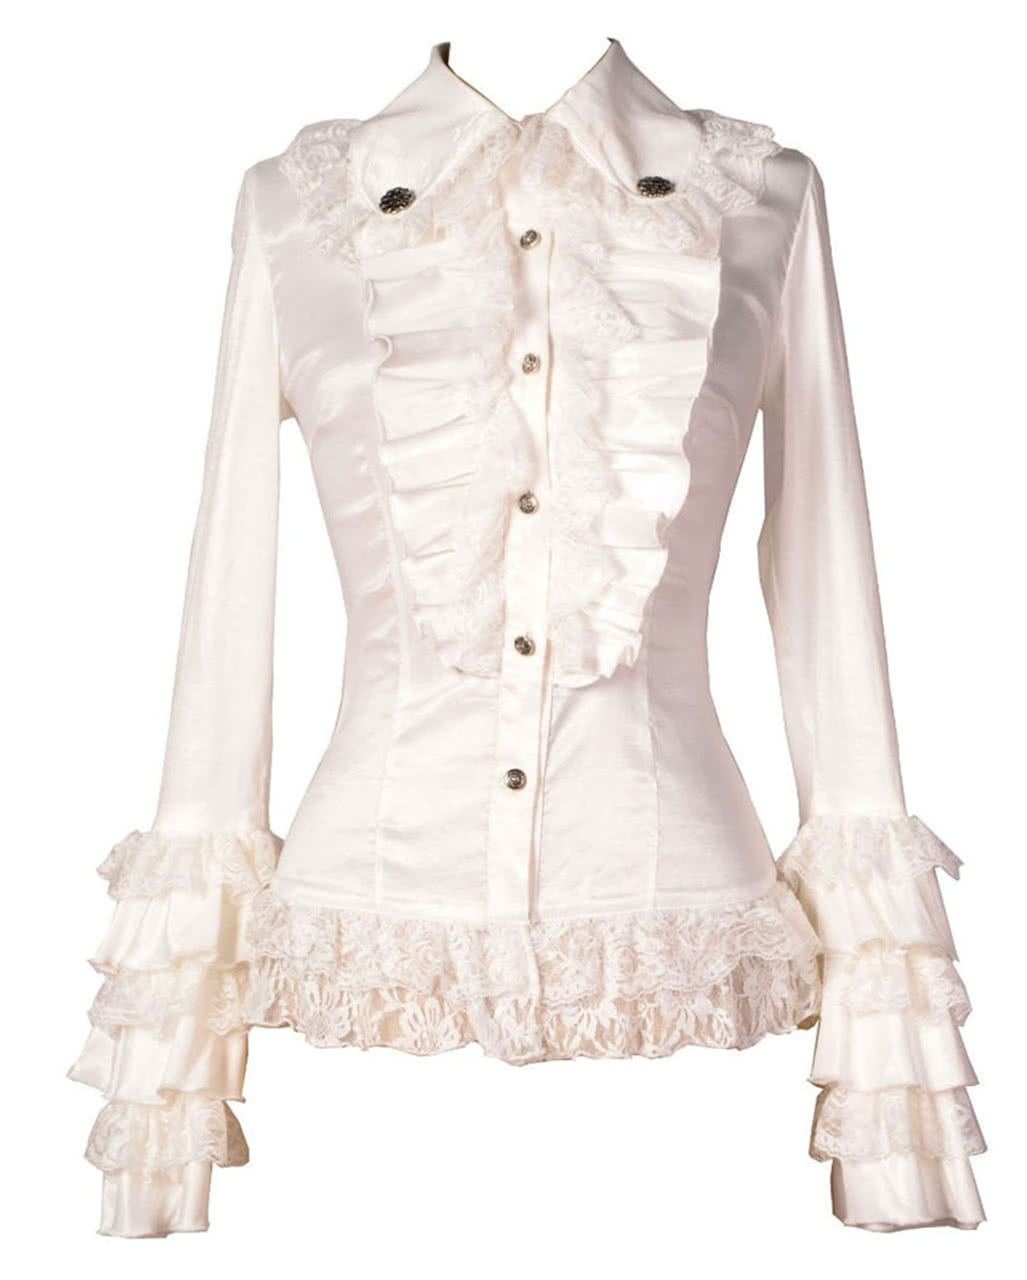 aaf5597fdcc1ca Gothic Blouse white | Buy Steampunk Fashion | horror-shop.com